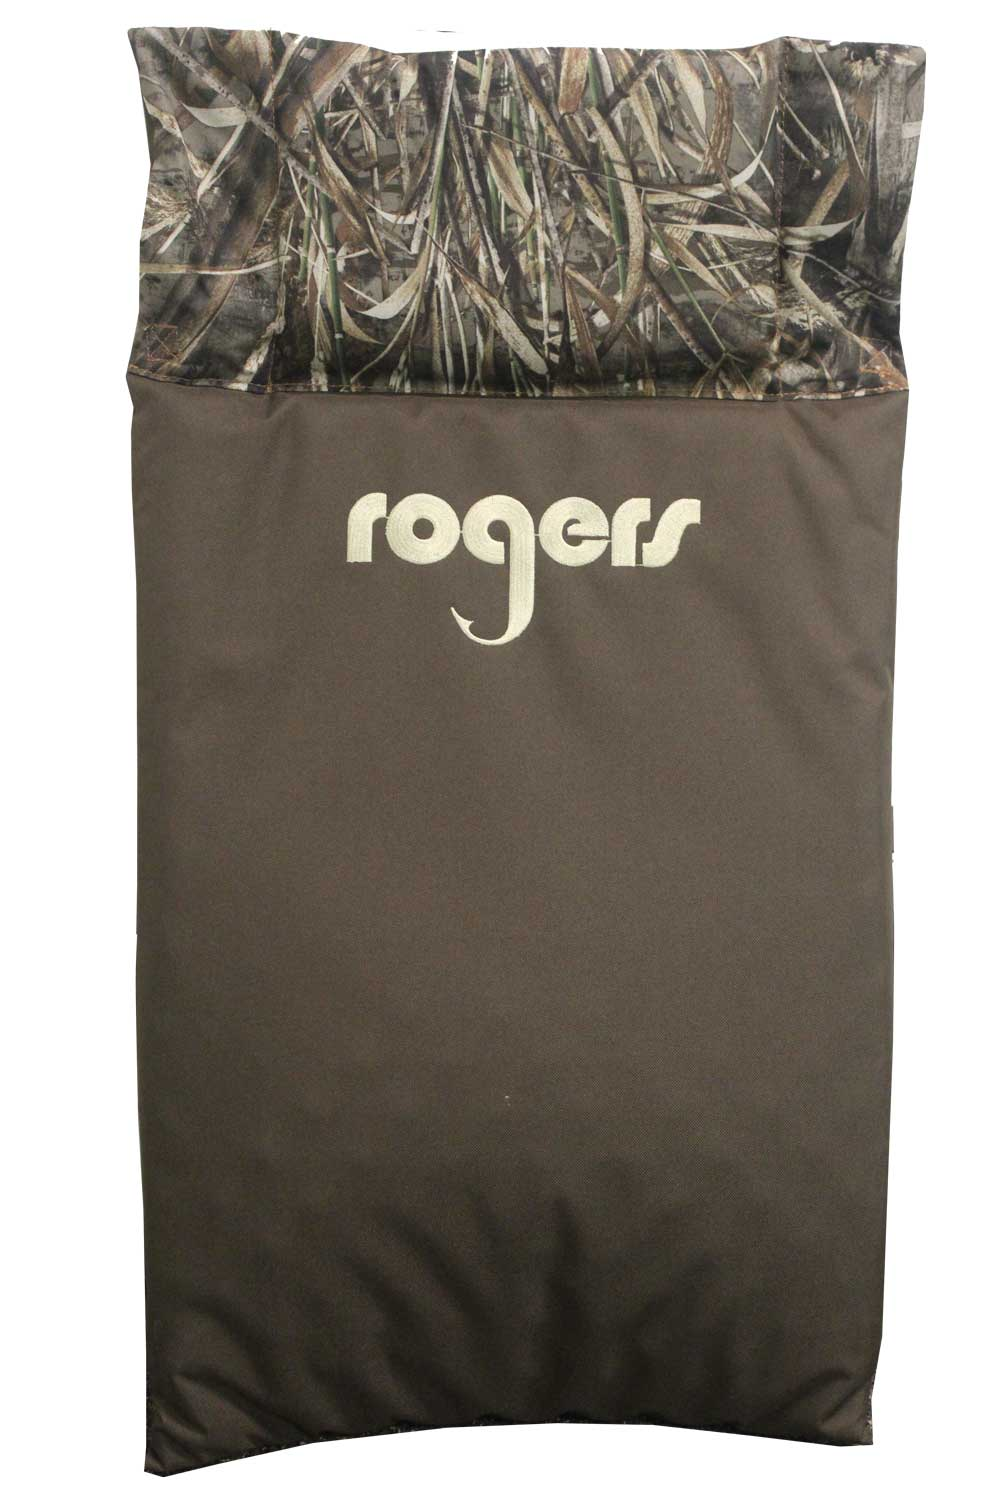 Rogers Springboard Layout Blind Backrest_1.jpg